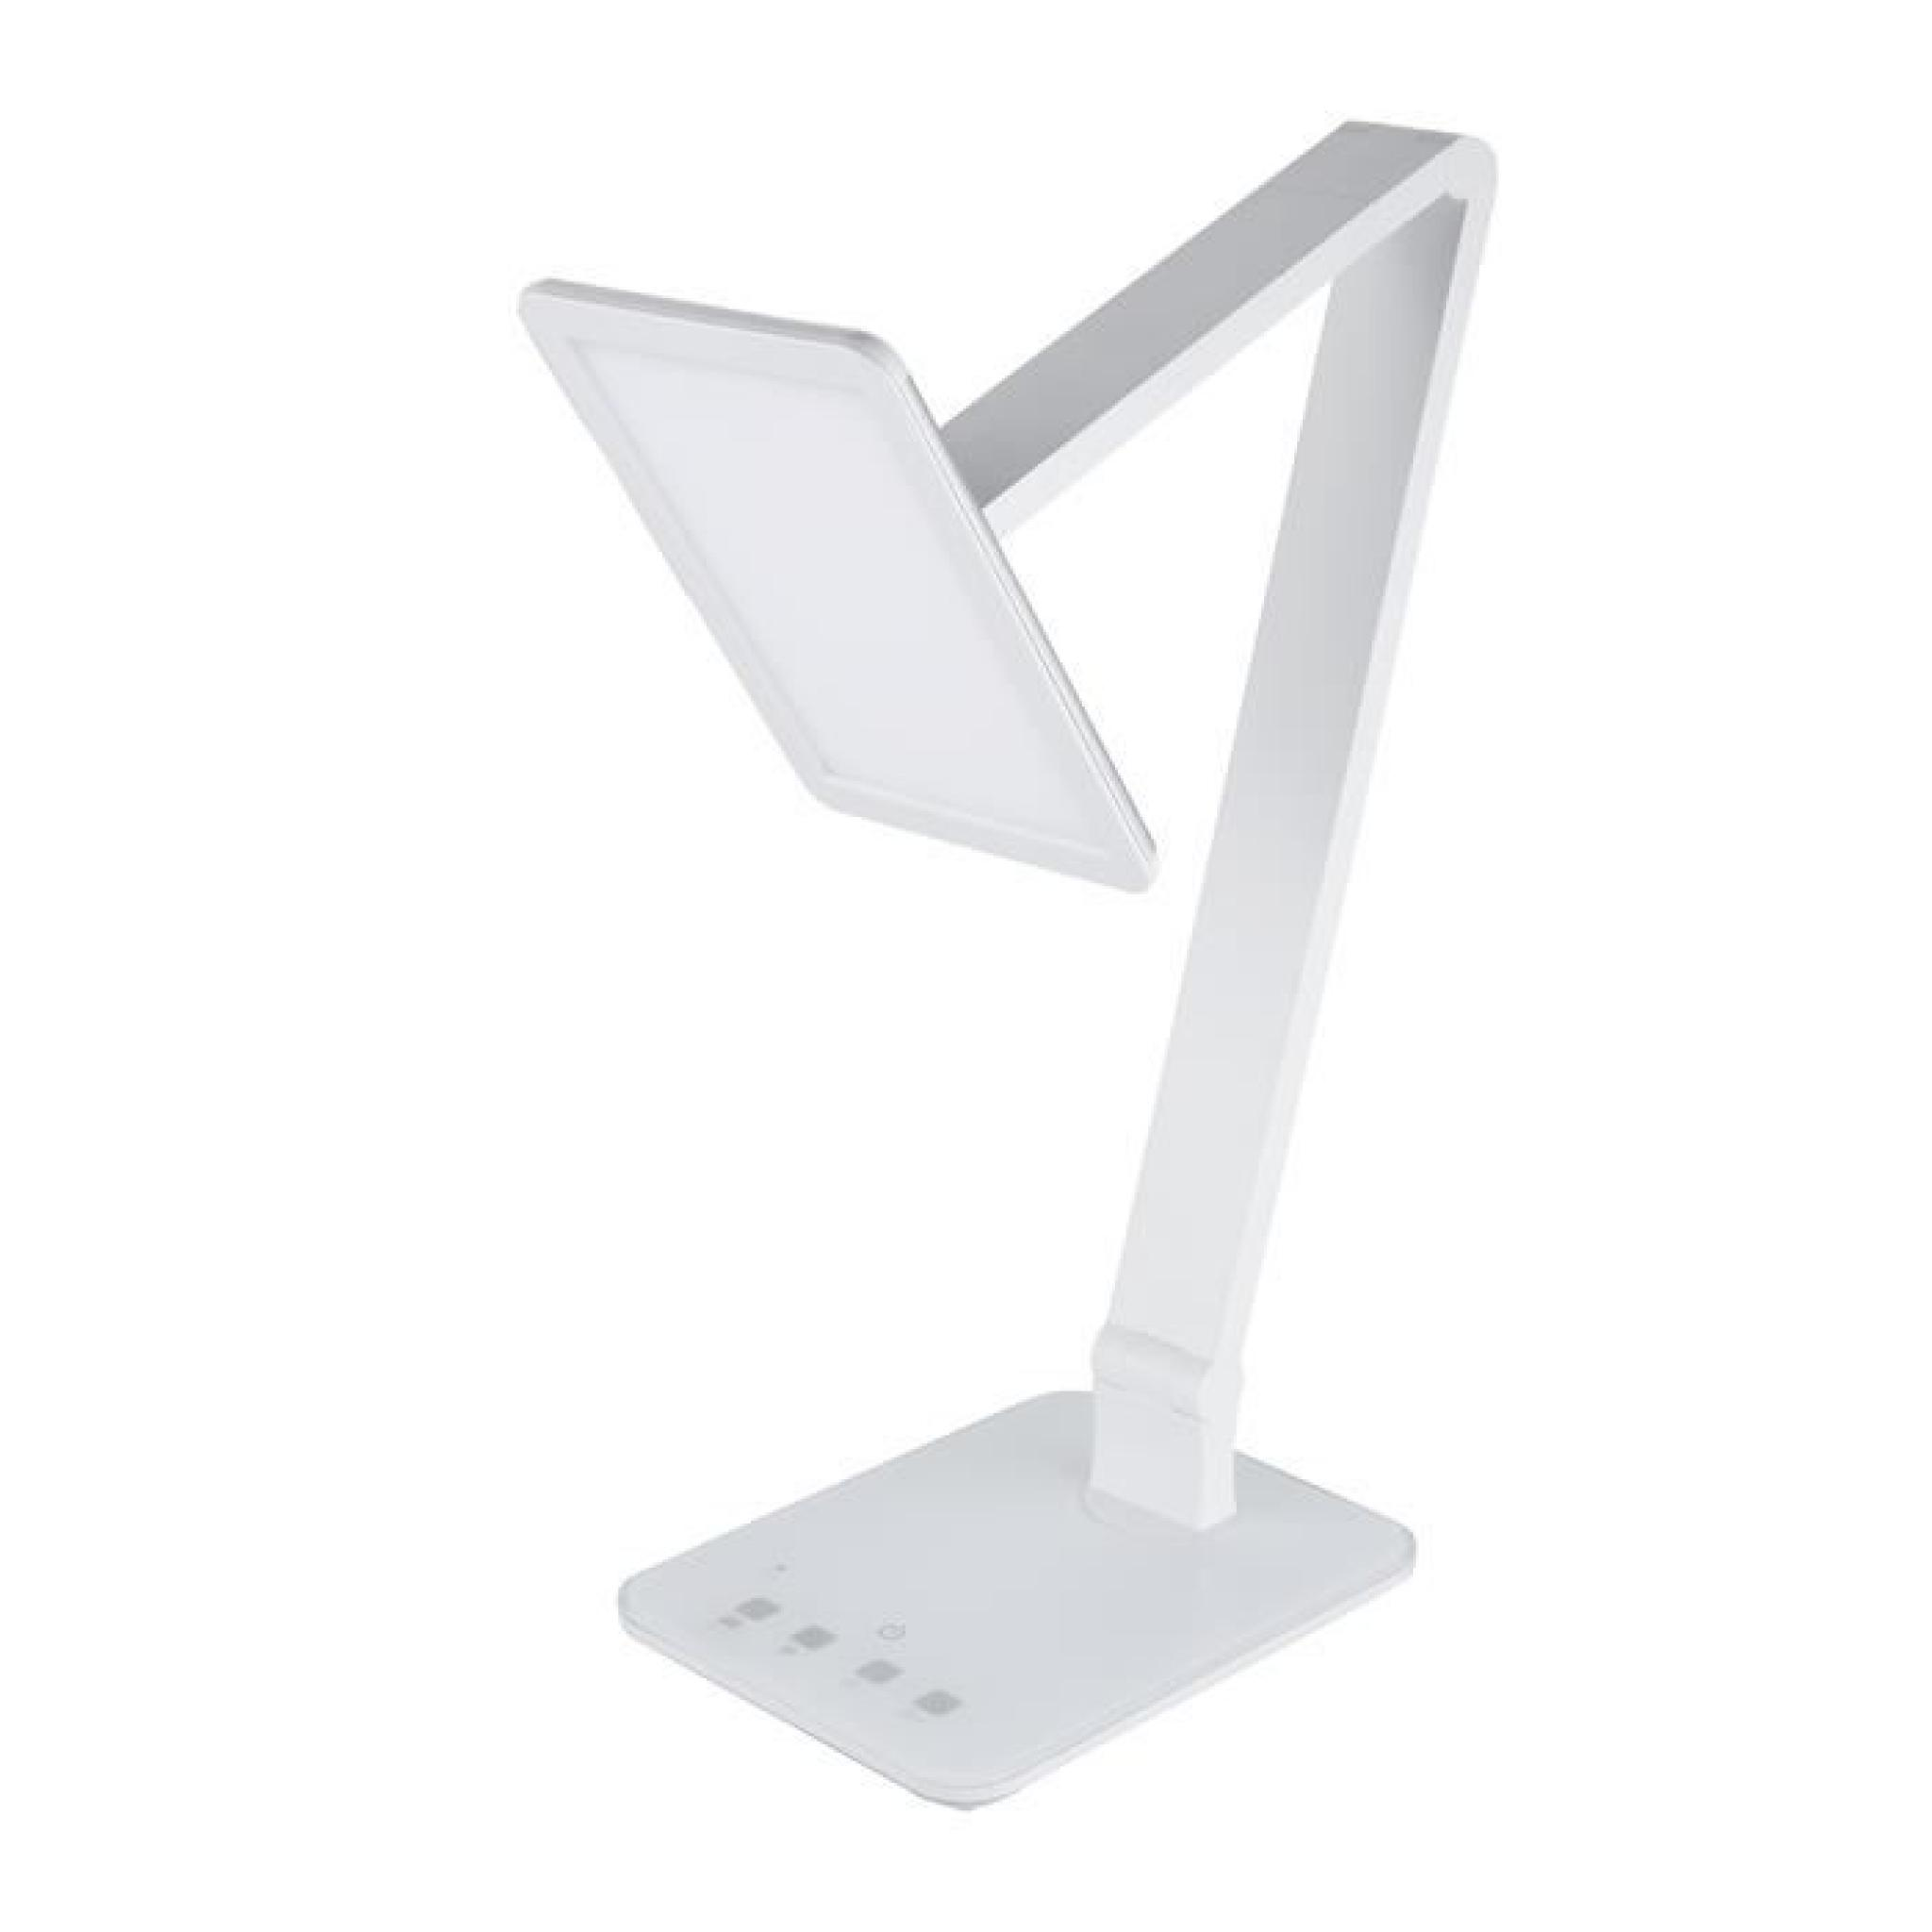 Tactile Recharge Usb Contrôles Lampe Bureau Led Floureon Blanc Table De dxCBoe